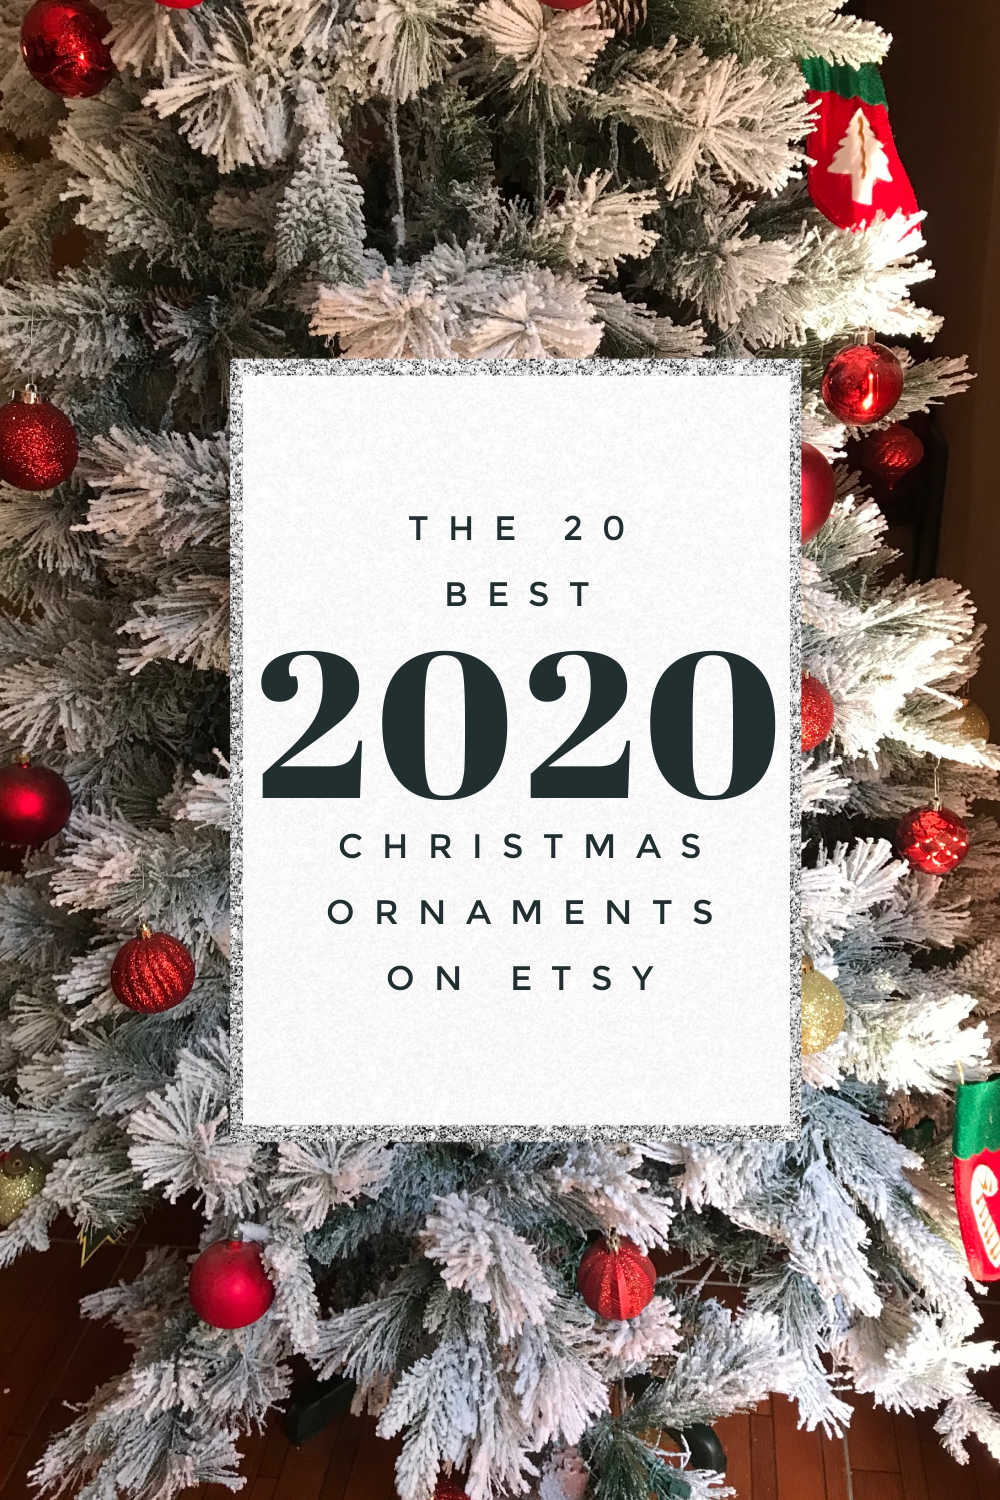 20 Best 2020 Christmas Ornaments on Etsy